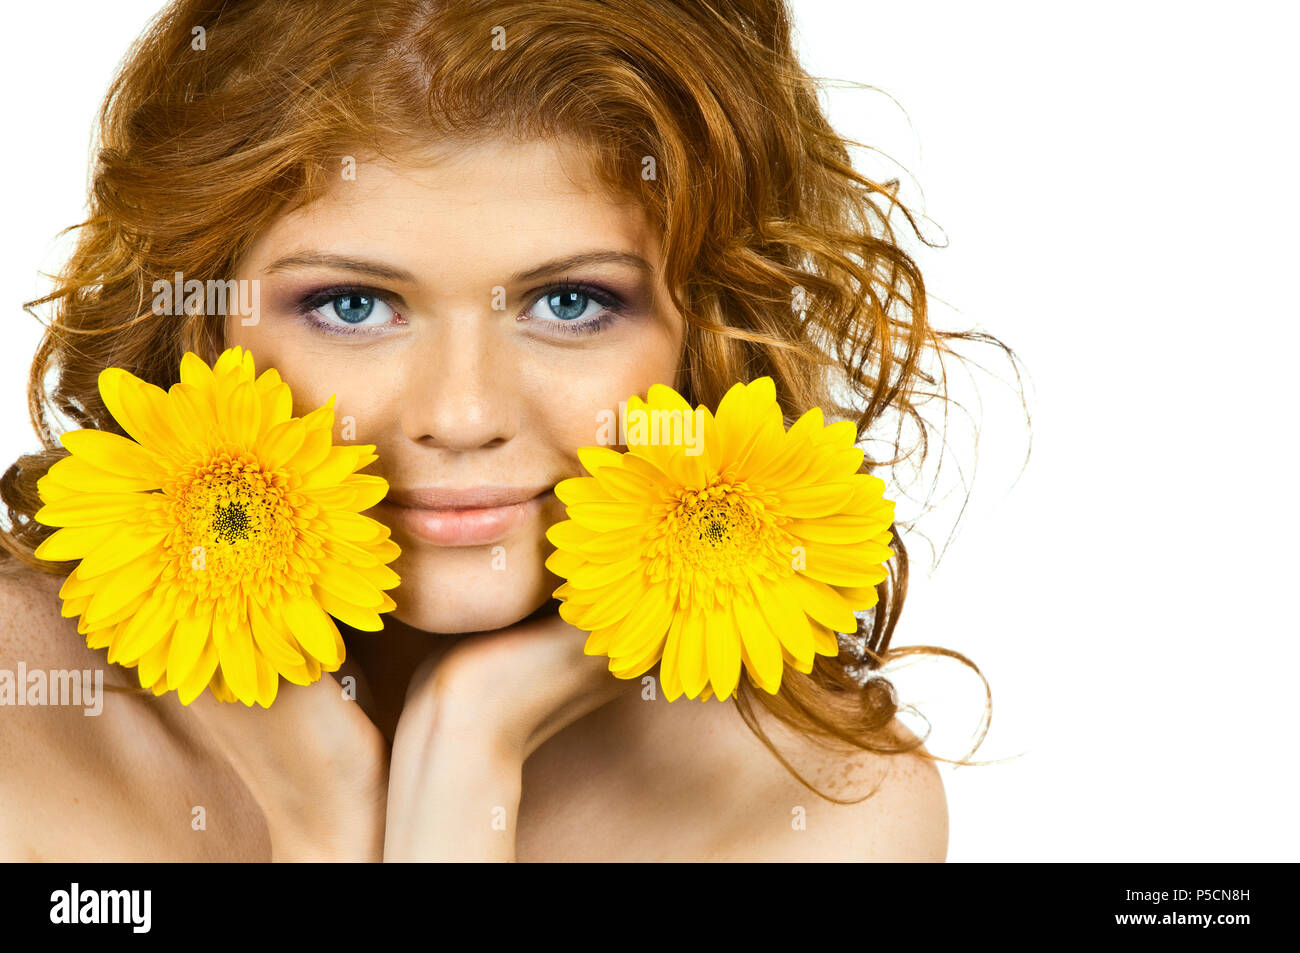 the very  pretty red-haired young woman  with yellow flowe, horizontal close up portrait - Stock Image